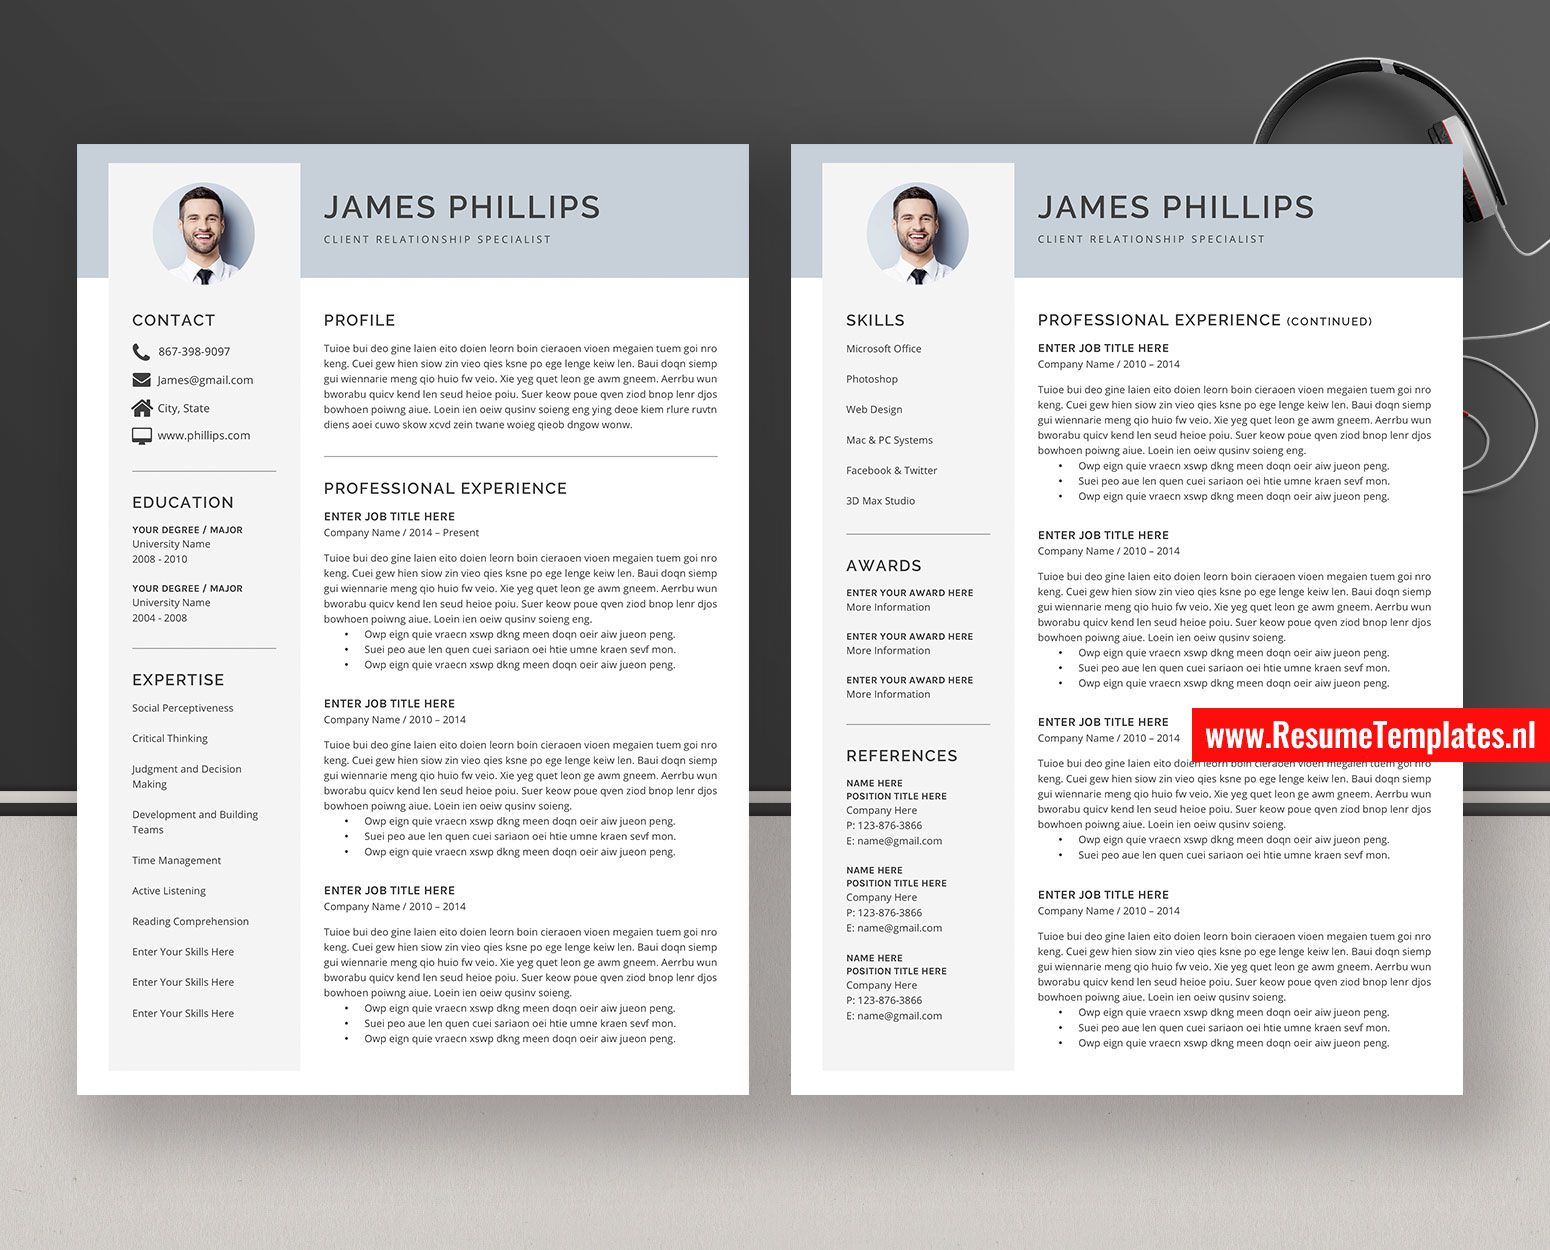 008 Excellent Curriculum Vitae Word Template Highest Clarity  Templates Download M 2019 Cv FreeFull